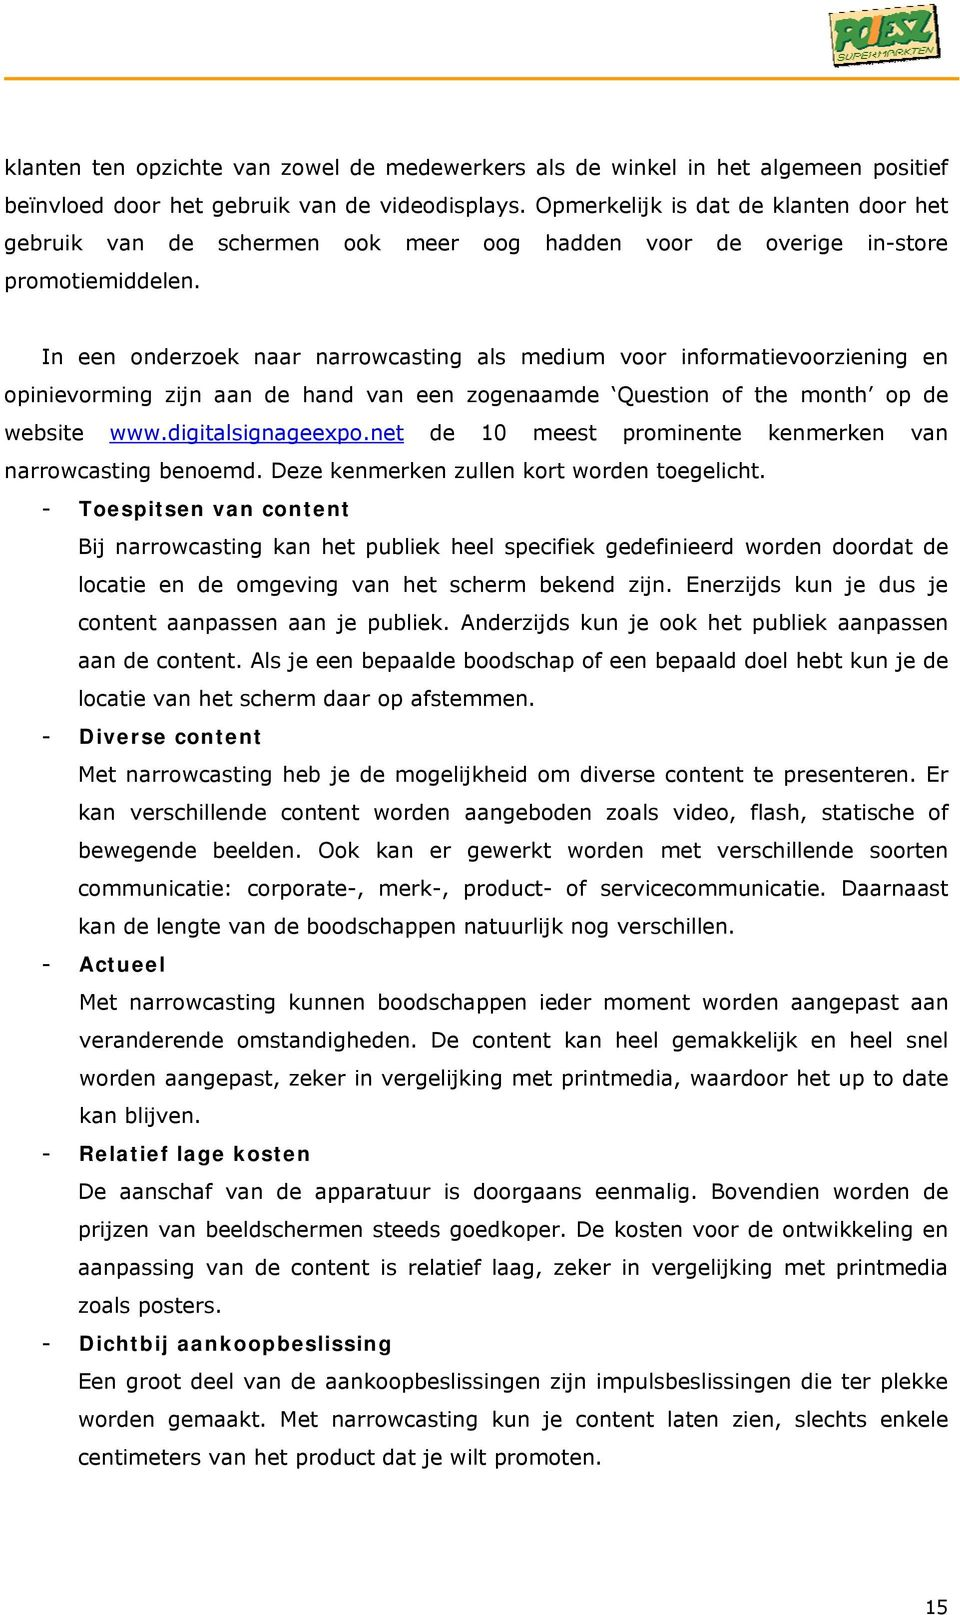 In een onderzoek naar narrowcasting als medium voor informatievoorziening en opinievorming zijn aan de hand van een zogenaamde Question of the month op de website www.digitalsignageexpo.